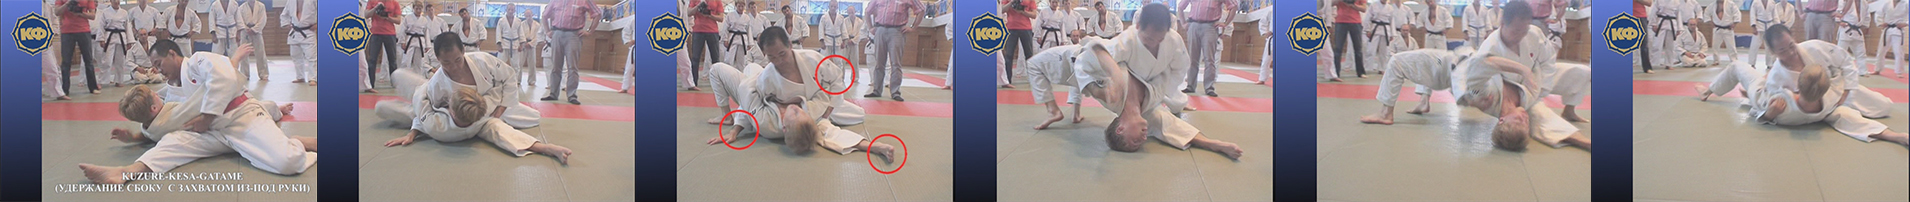 Kuzure-kesa-gatame (holding from the side with a grip from under the arm). Judo poster 6. Orange belt 4 KU.